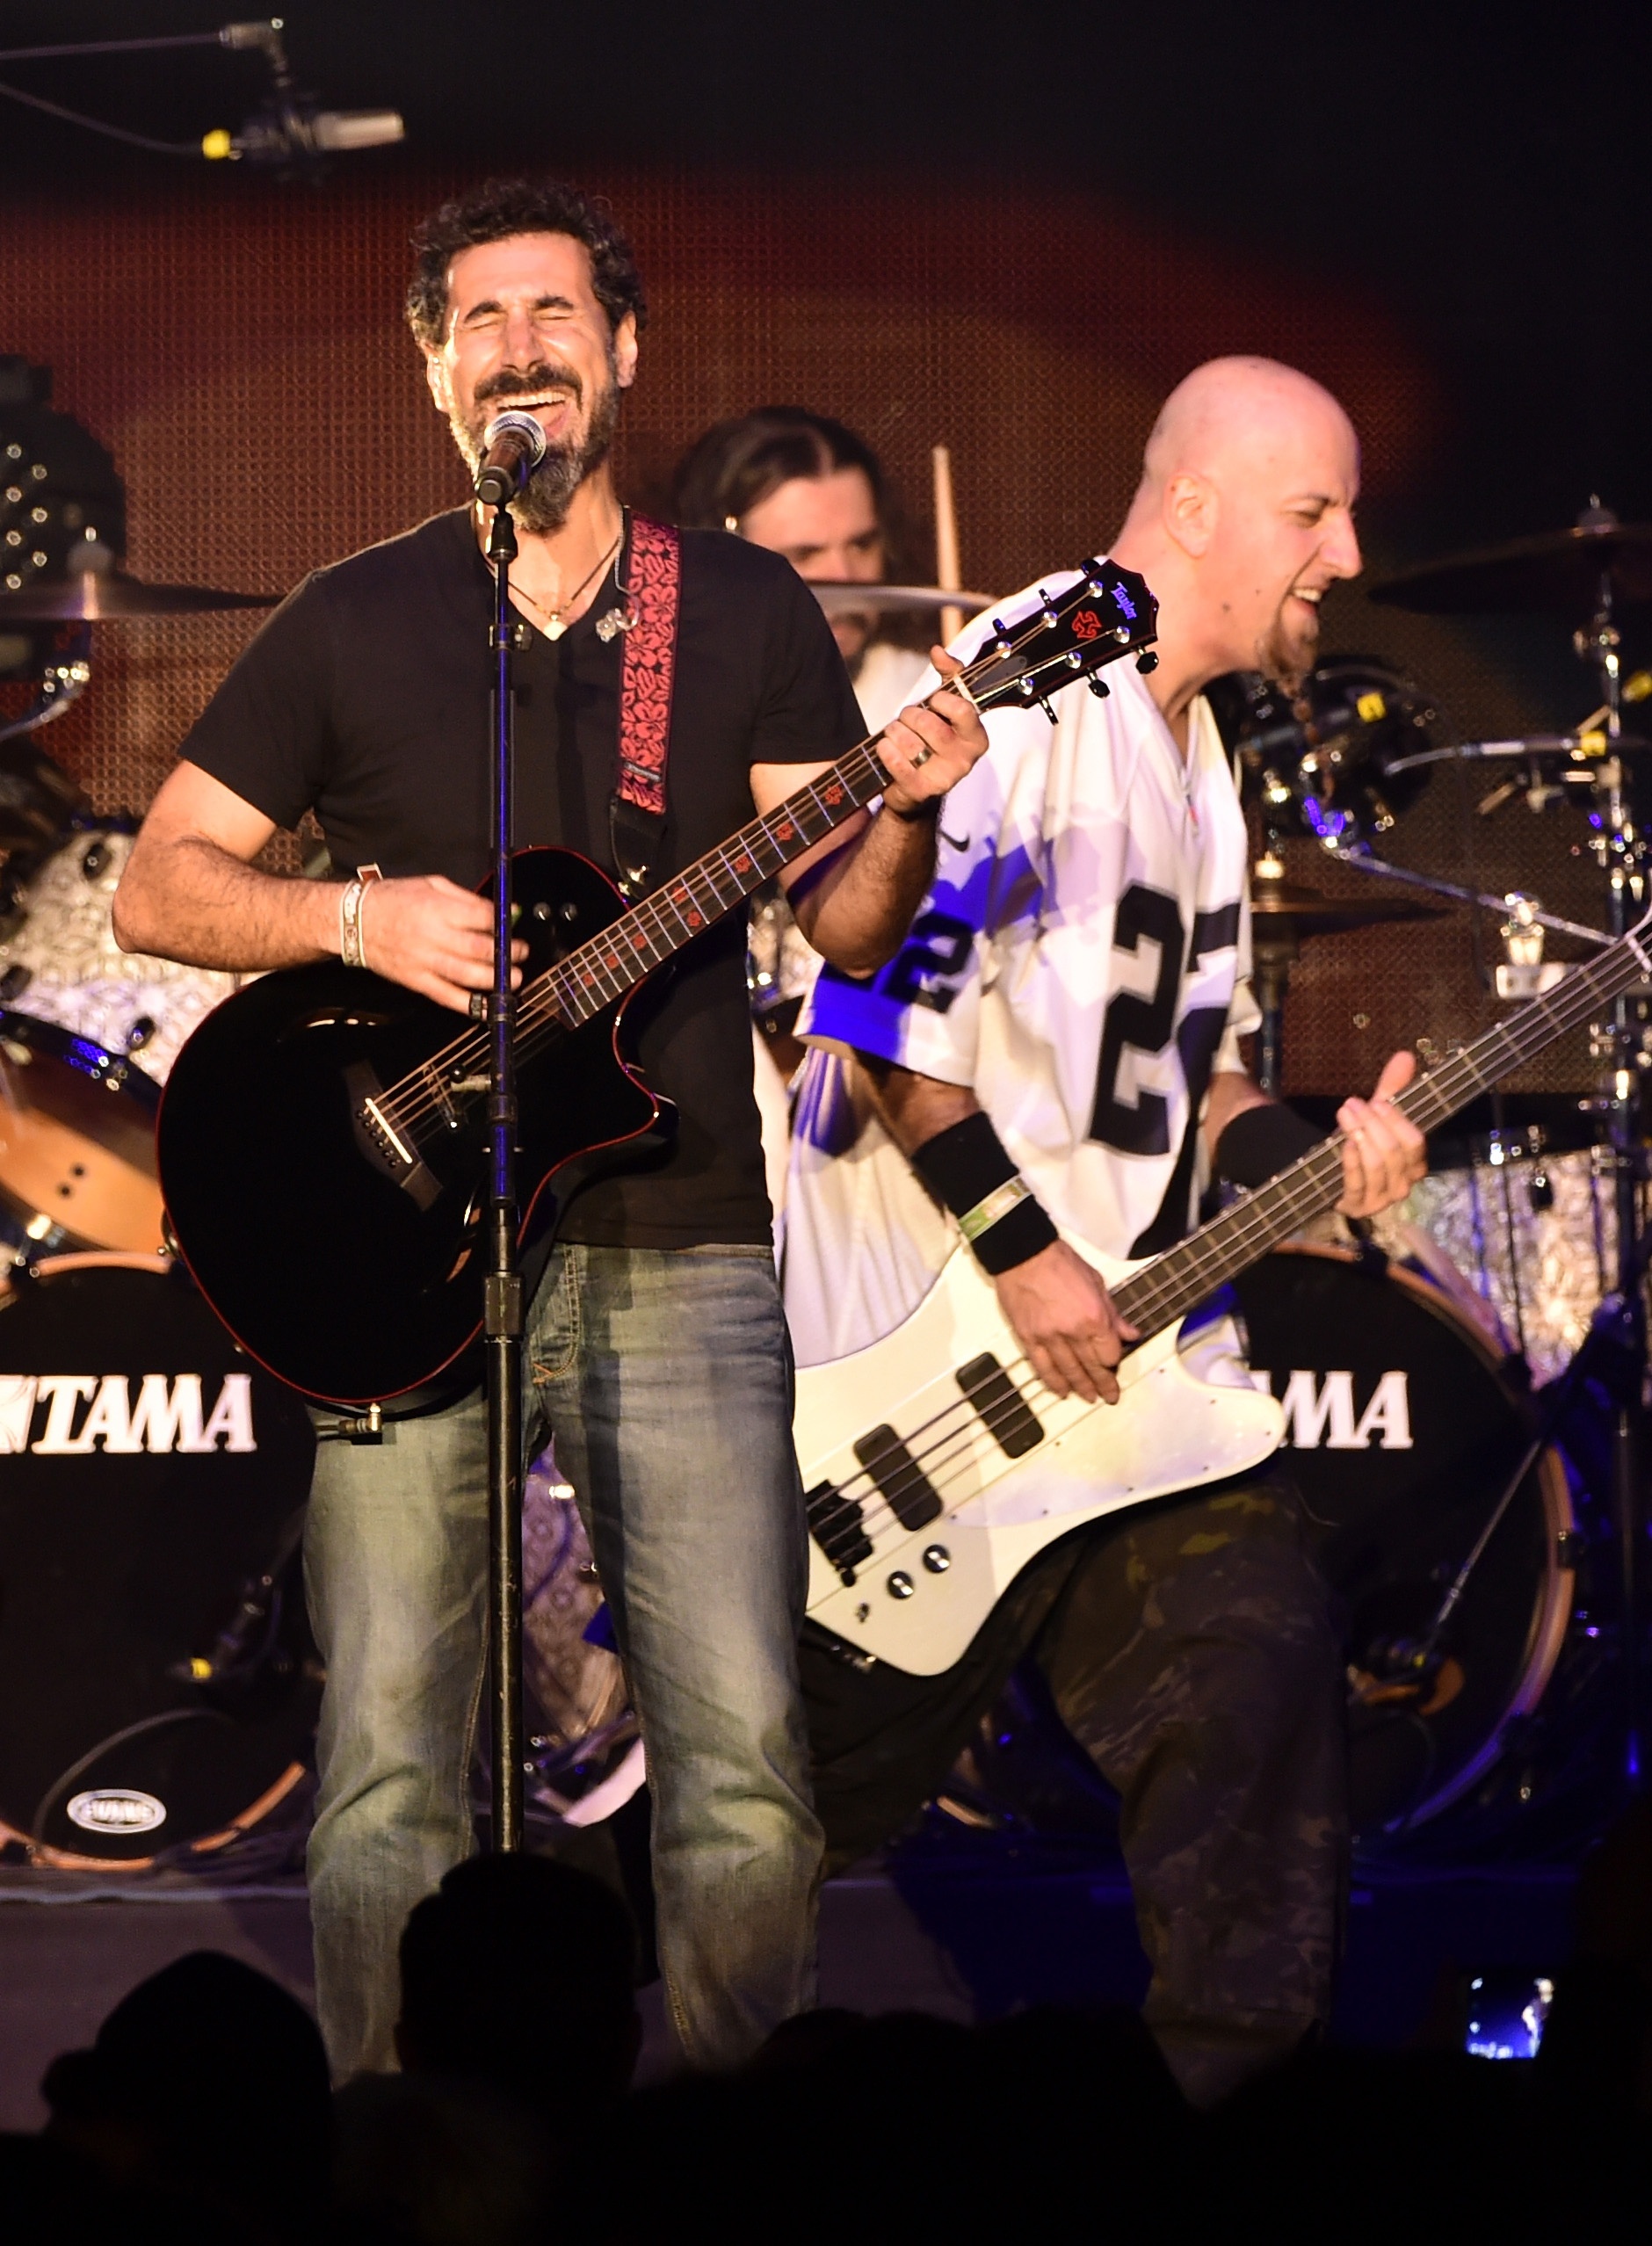 System of a Down: Genocide Tour More Important Than New Music